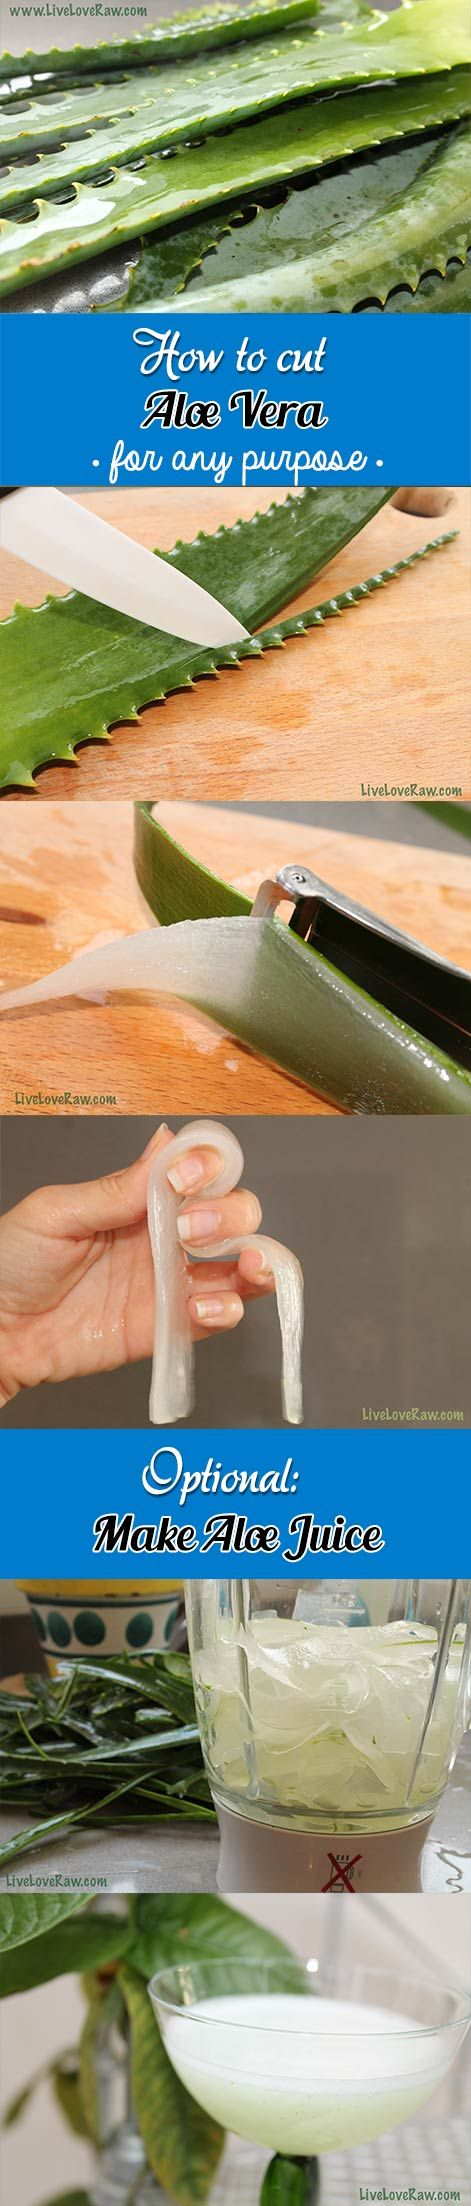 How to cut aloe vera by Live Love Raw…